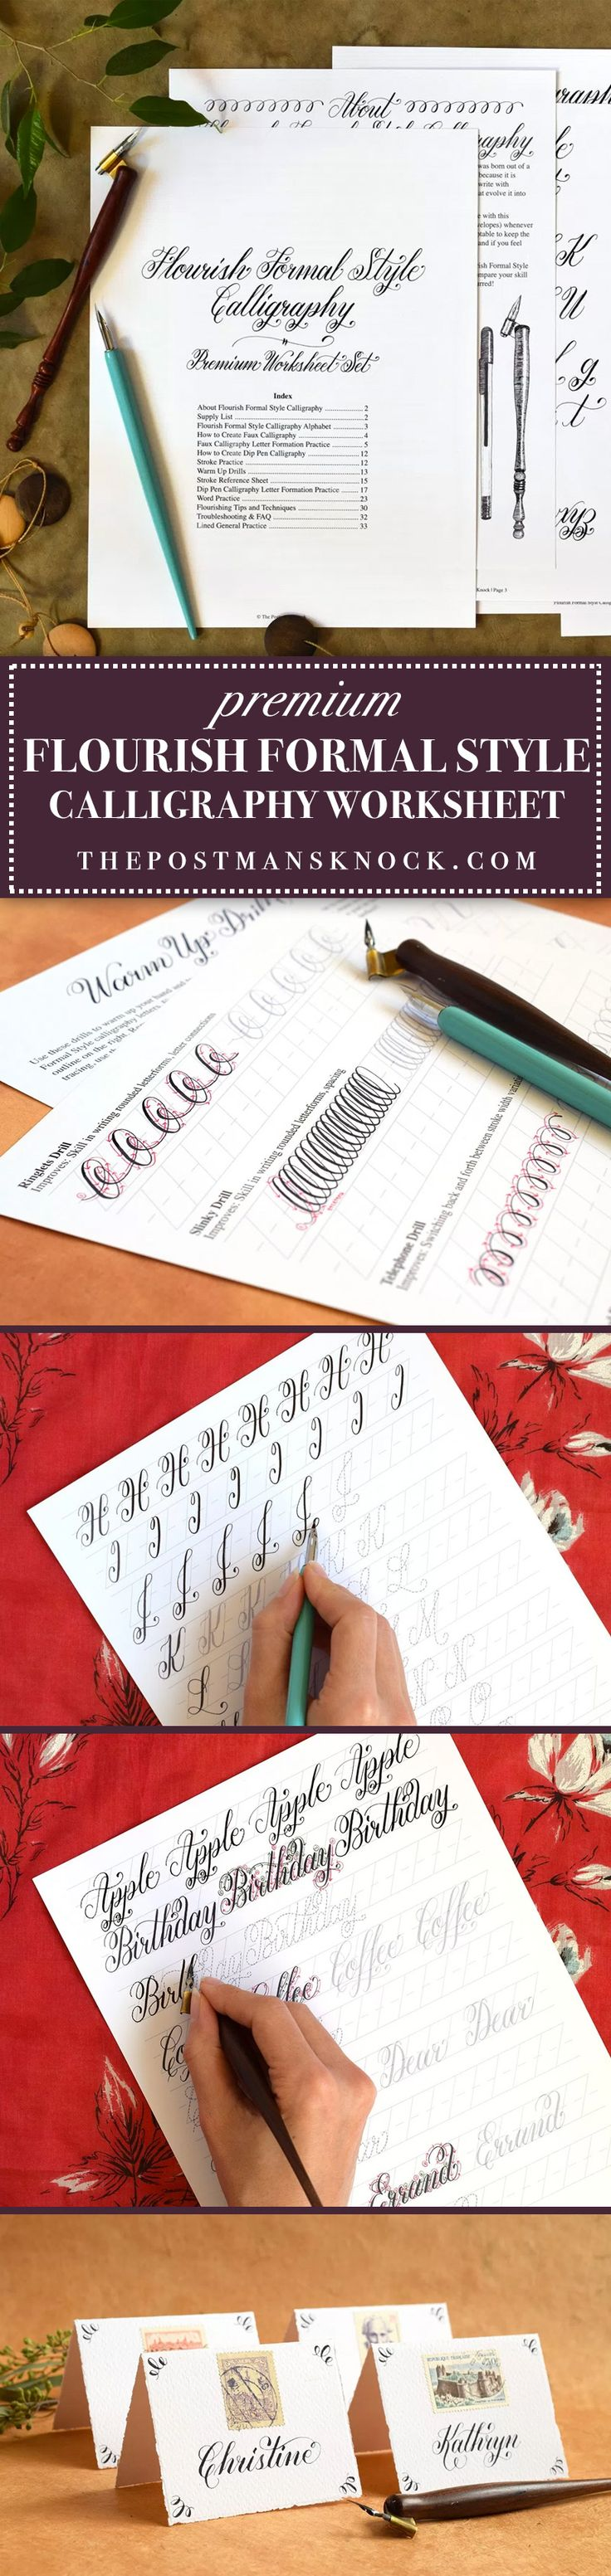 Best calligraphy pens for beginners ideas on pinterest